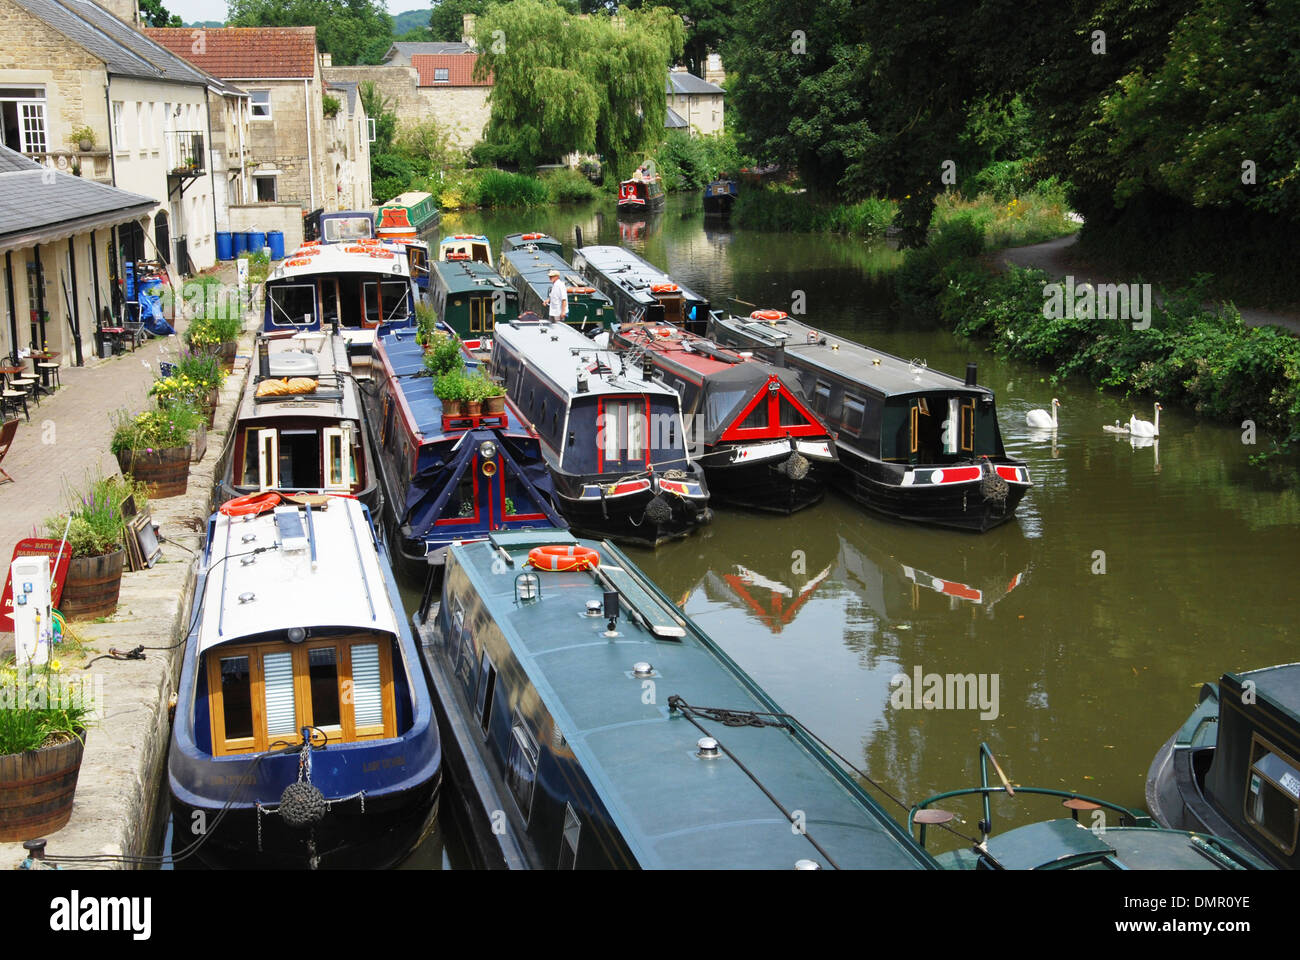 narrowboats on the Oxford canal, Oxfordshire United Kingdom - Stock Image